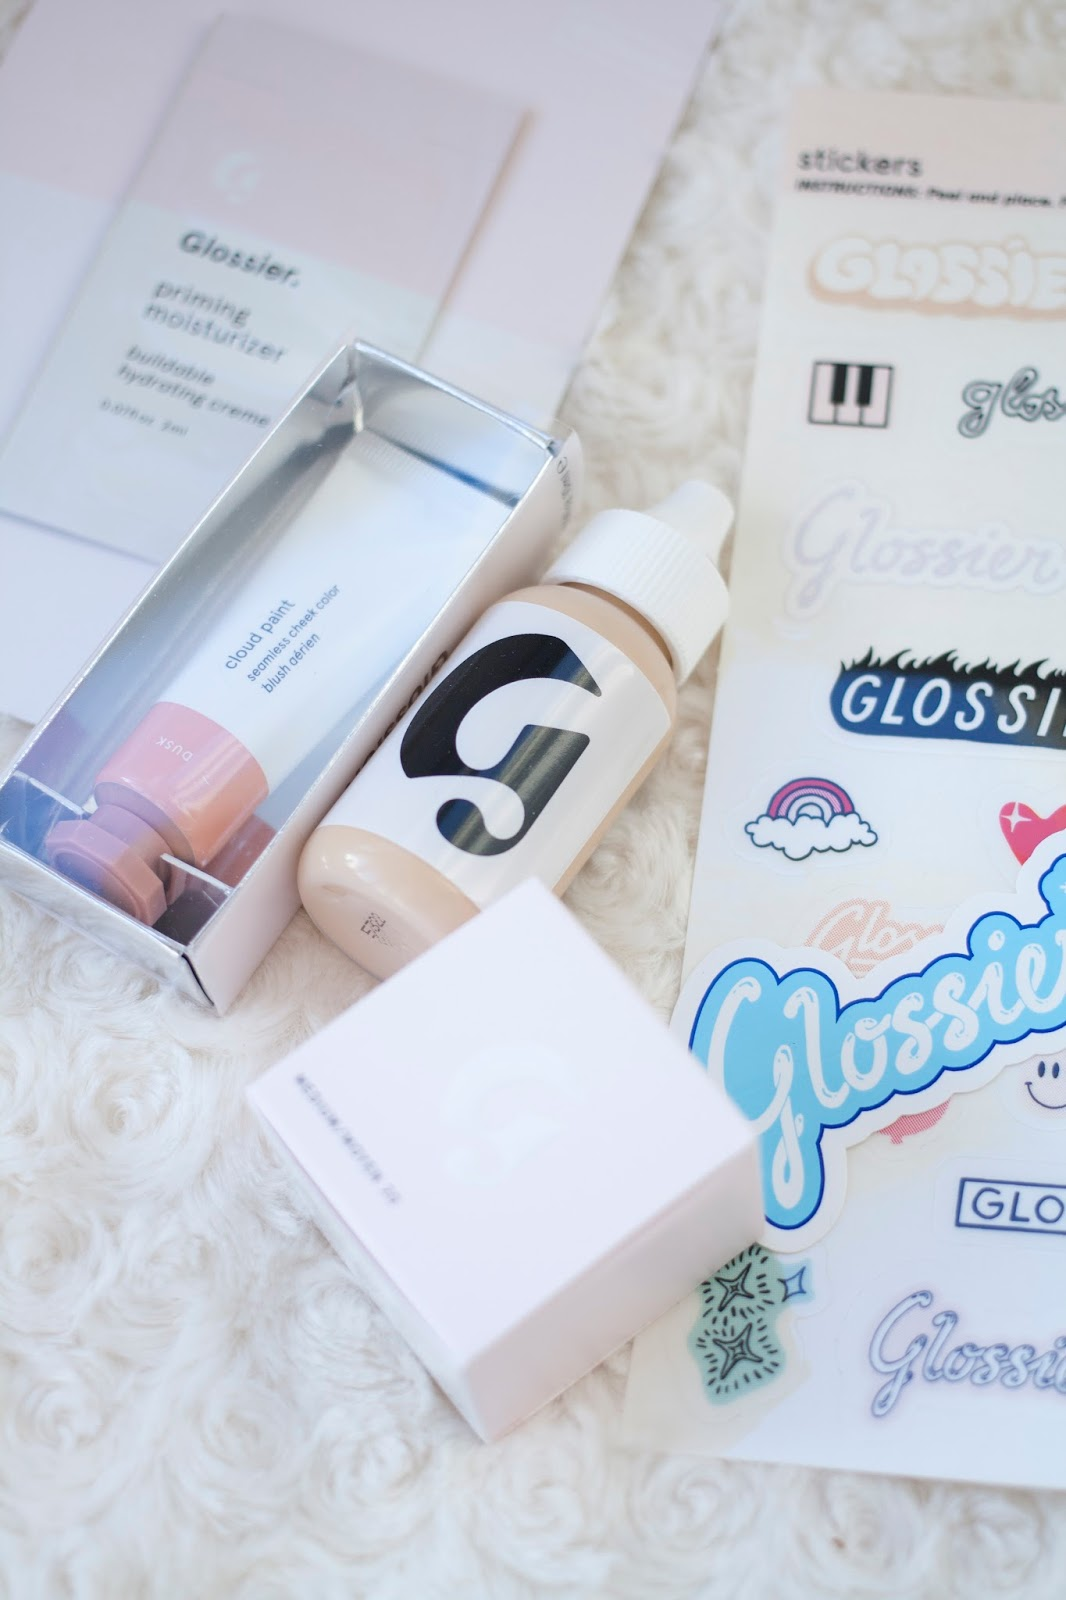 glossier, mymallbox.com, mymallbox review, mymallbox, mymallbox new zealand